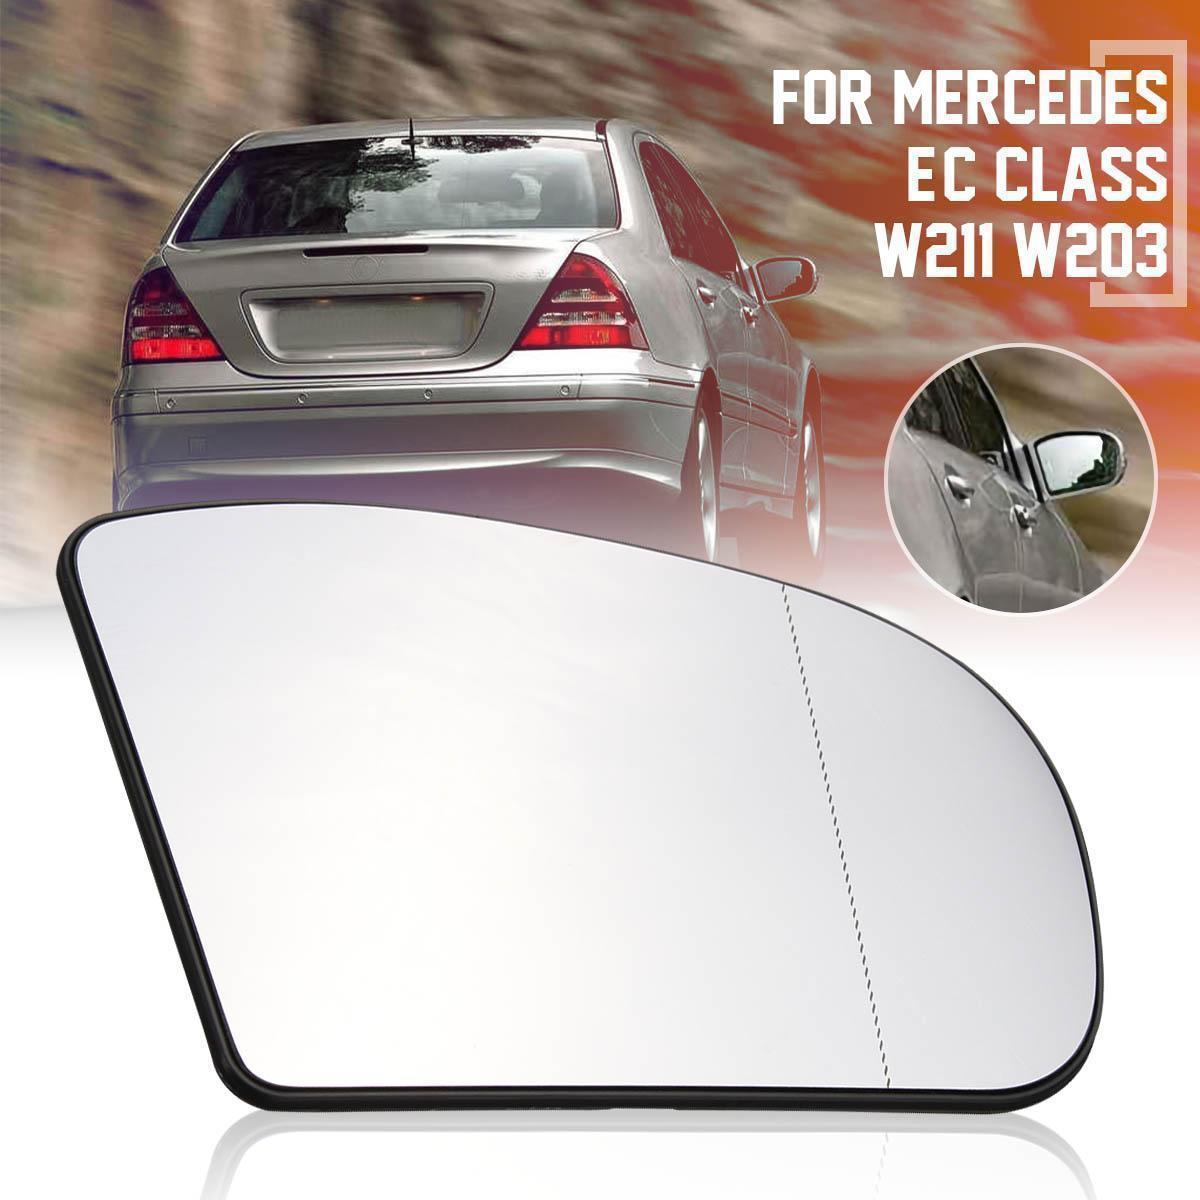 C-class W211 W203 Wide Angle Heated Door Mirror Glass For 2003-2006 Mercedes E